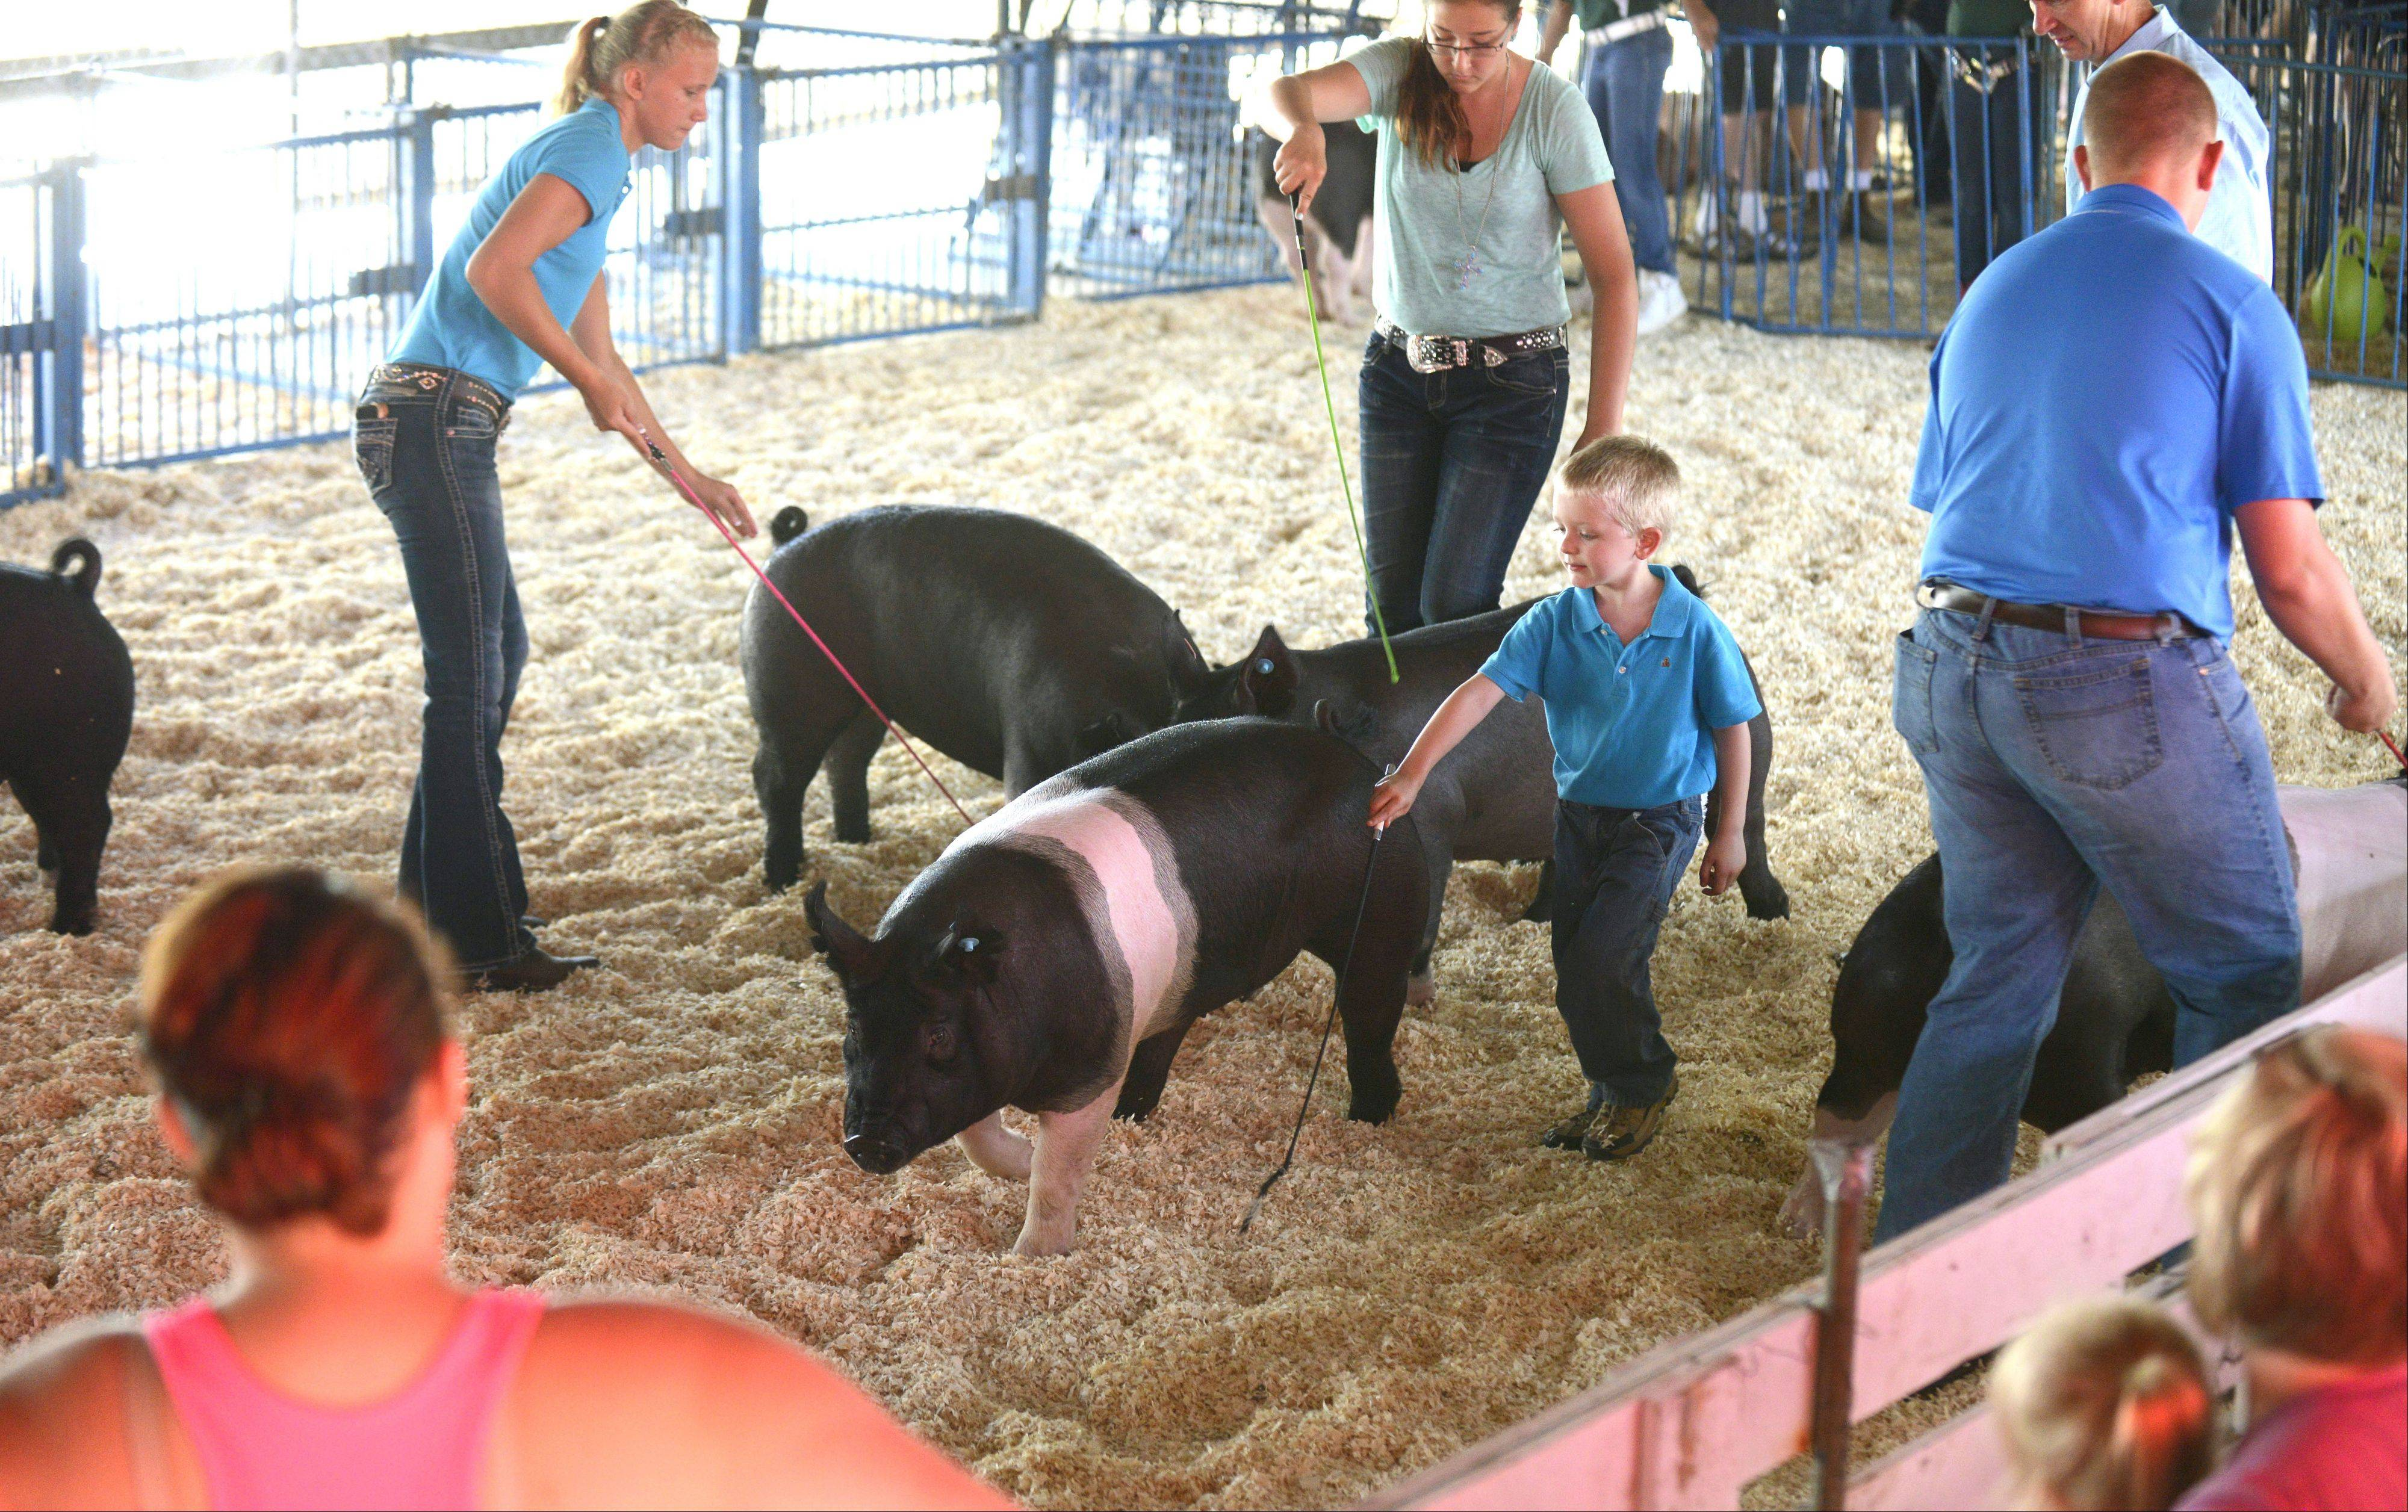 Clay Anderson, 4, of Big Rock, shows Happy the pig in the Class C Crossbred category Thursday at the Kane County Fair. Clay is showing for Darrin Ott and the Big Rock Cowhands 4-H club.